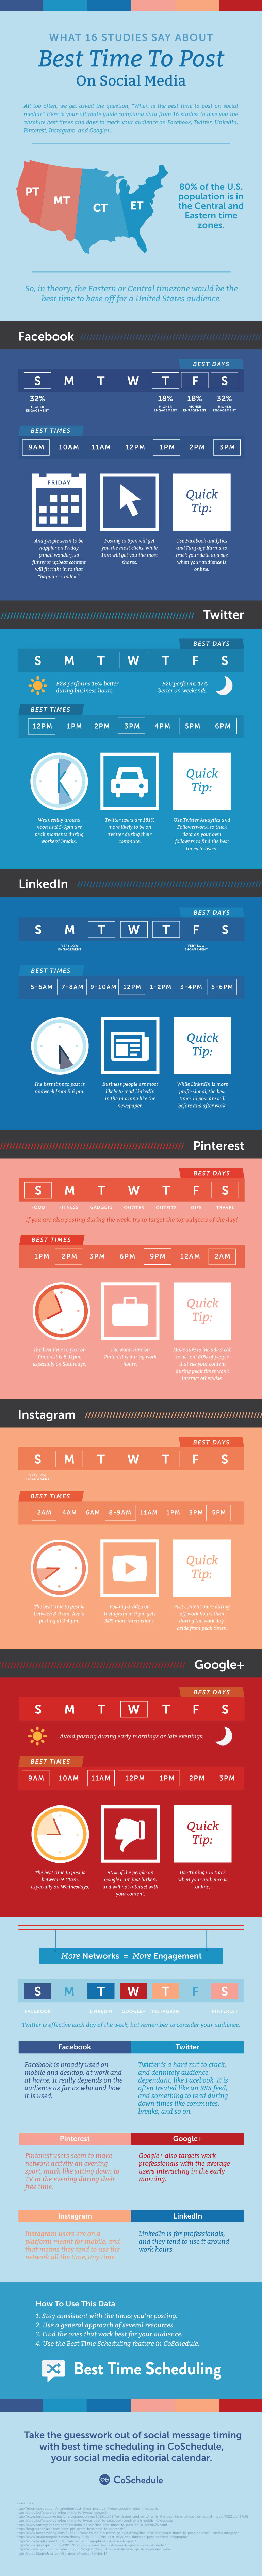 Content Scheduling: Best Time and Days to Post on Social Media - Infographic